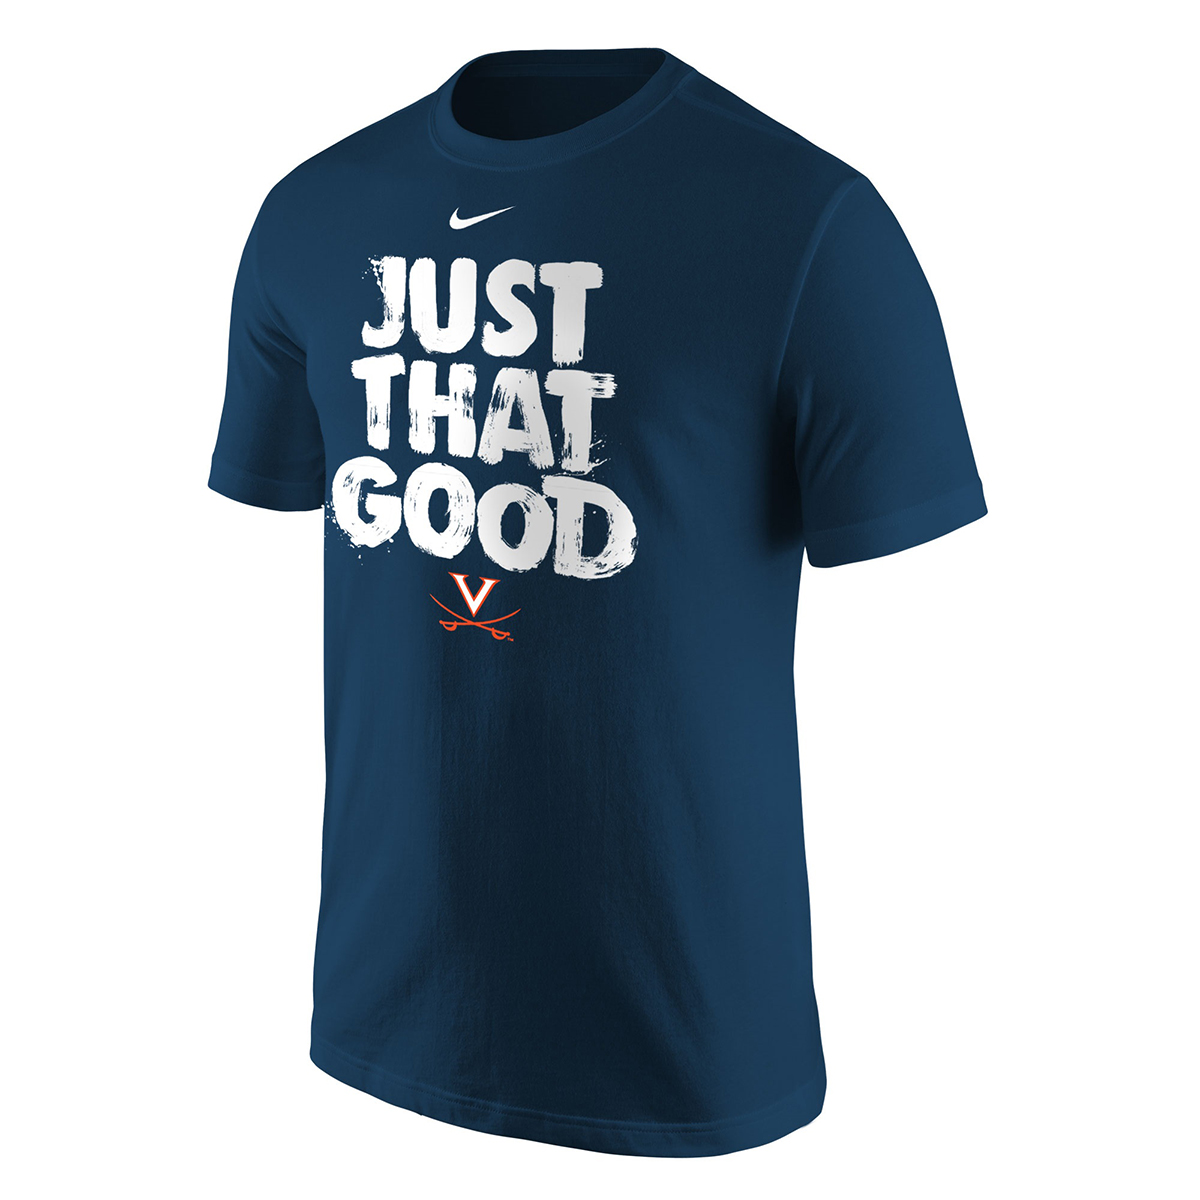 University of Virginia Just That Good T-shirt